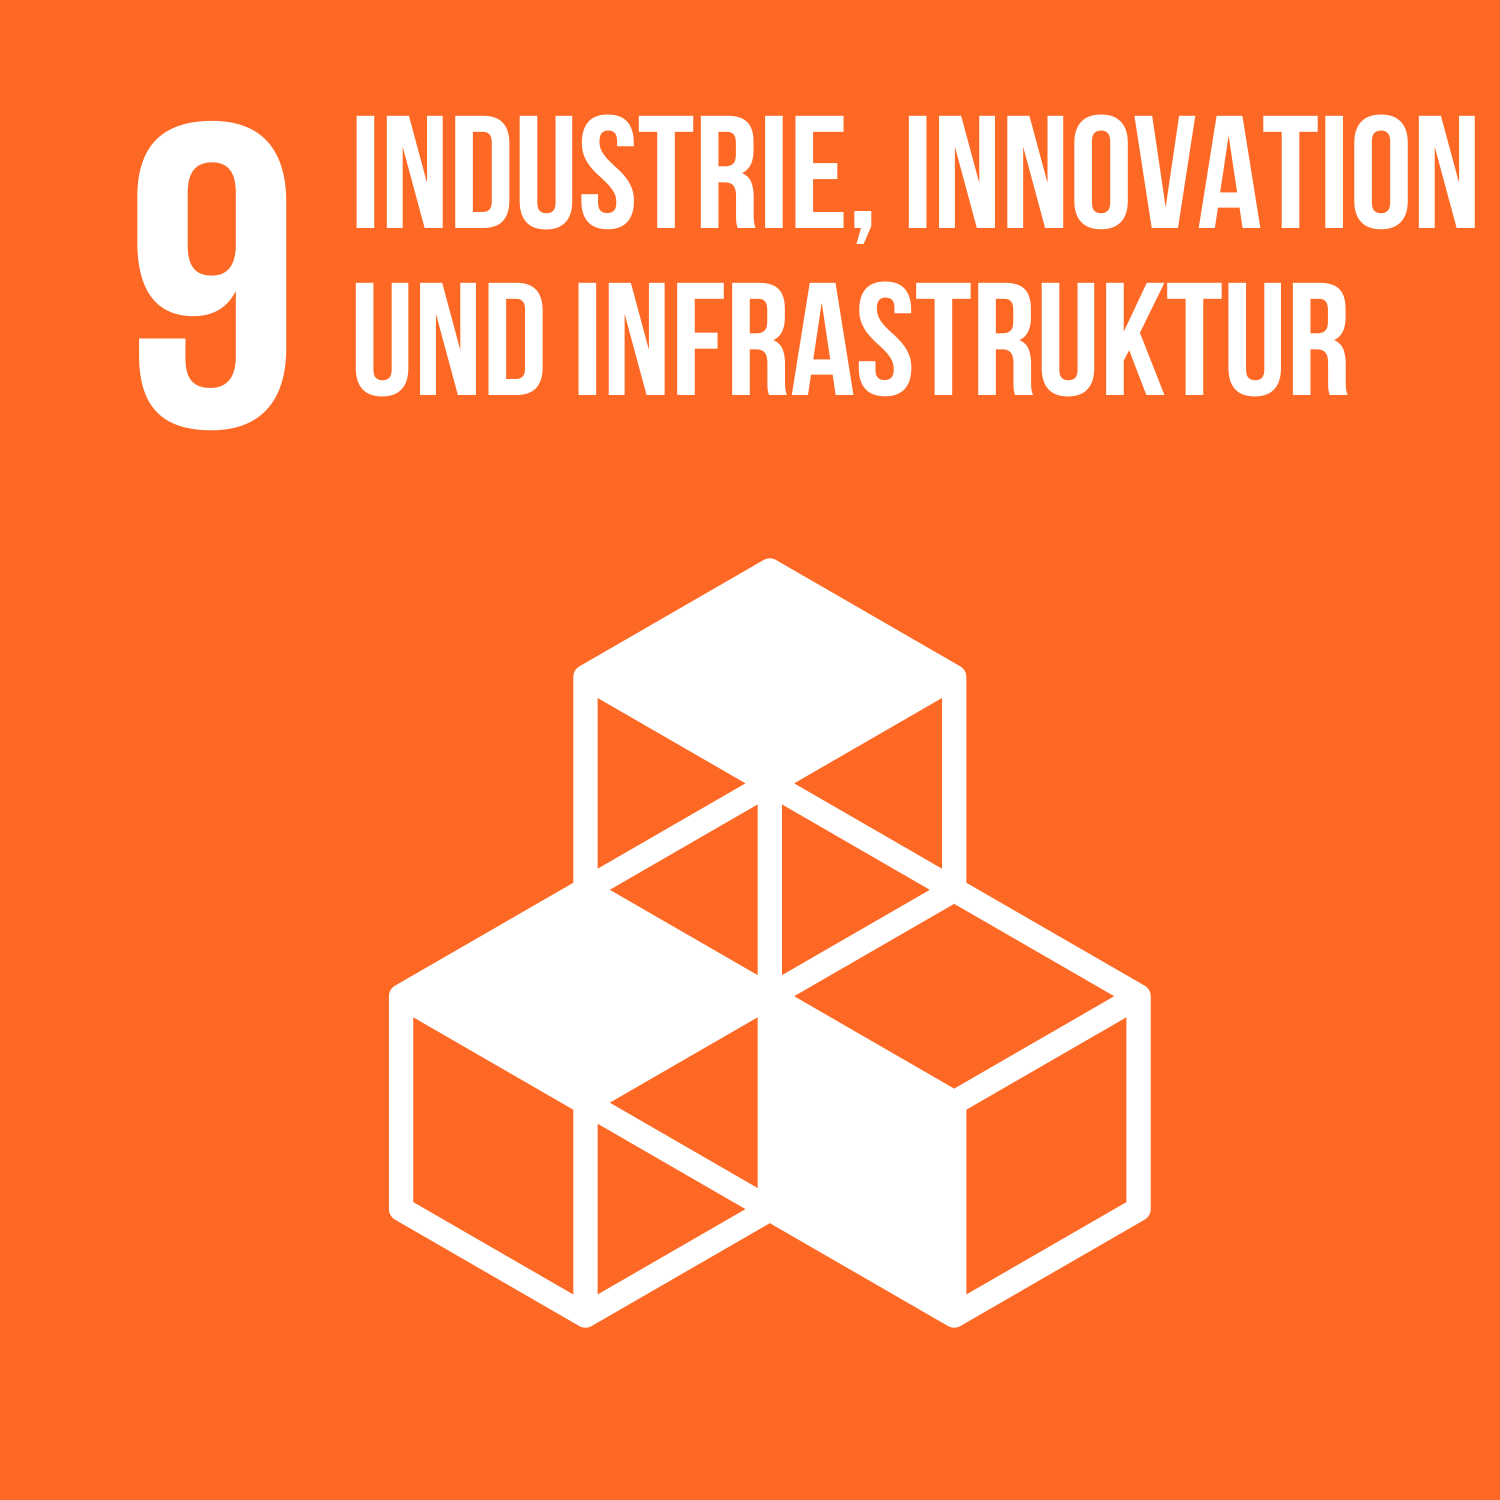 Ziel 9 Industrie, Innovation und Infrastruktur